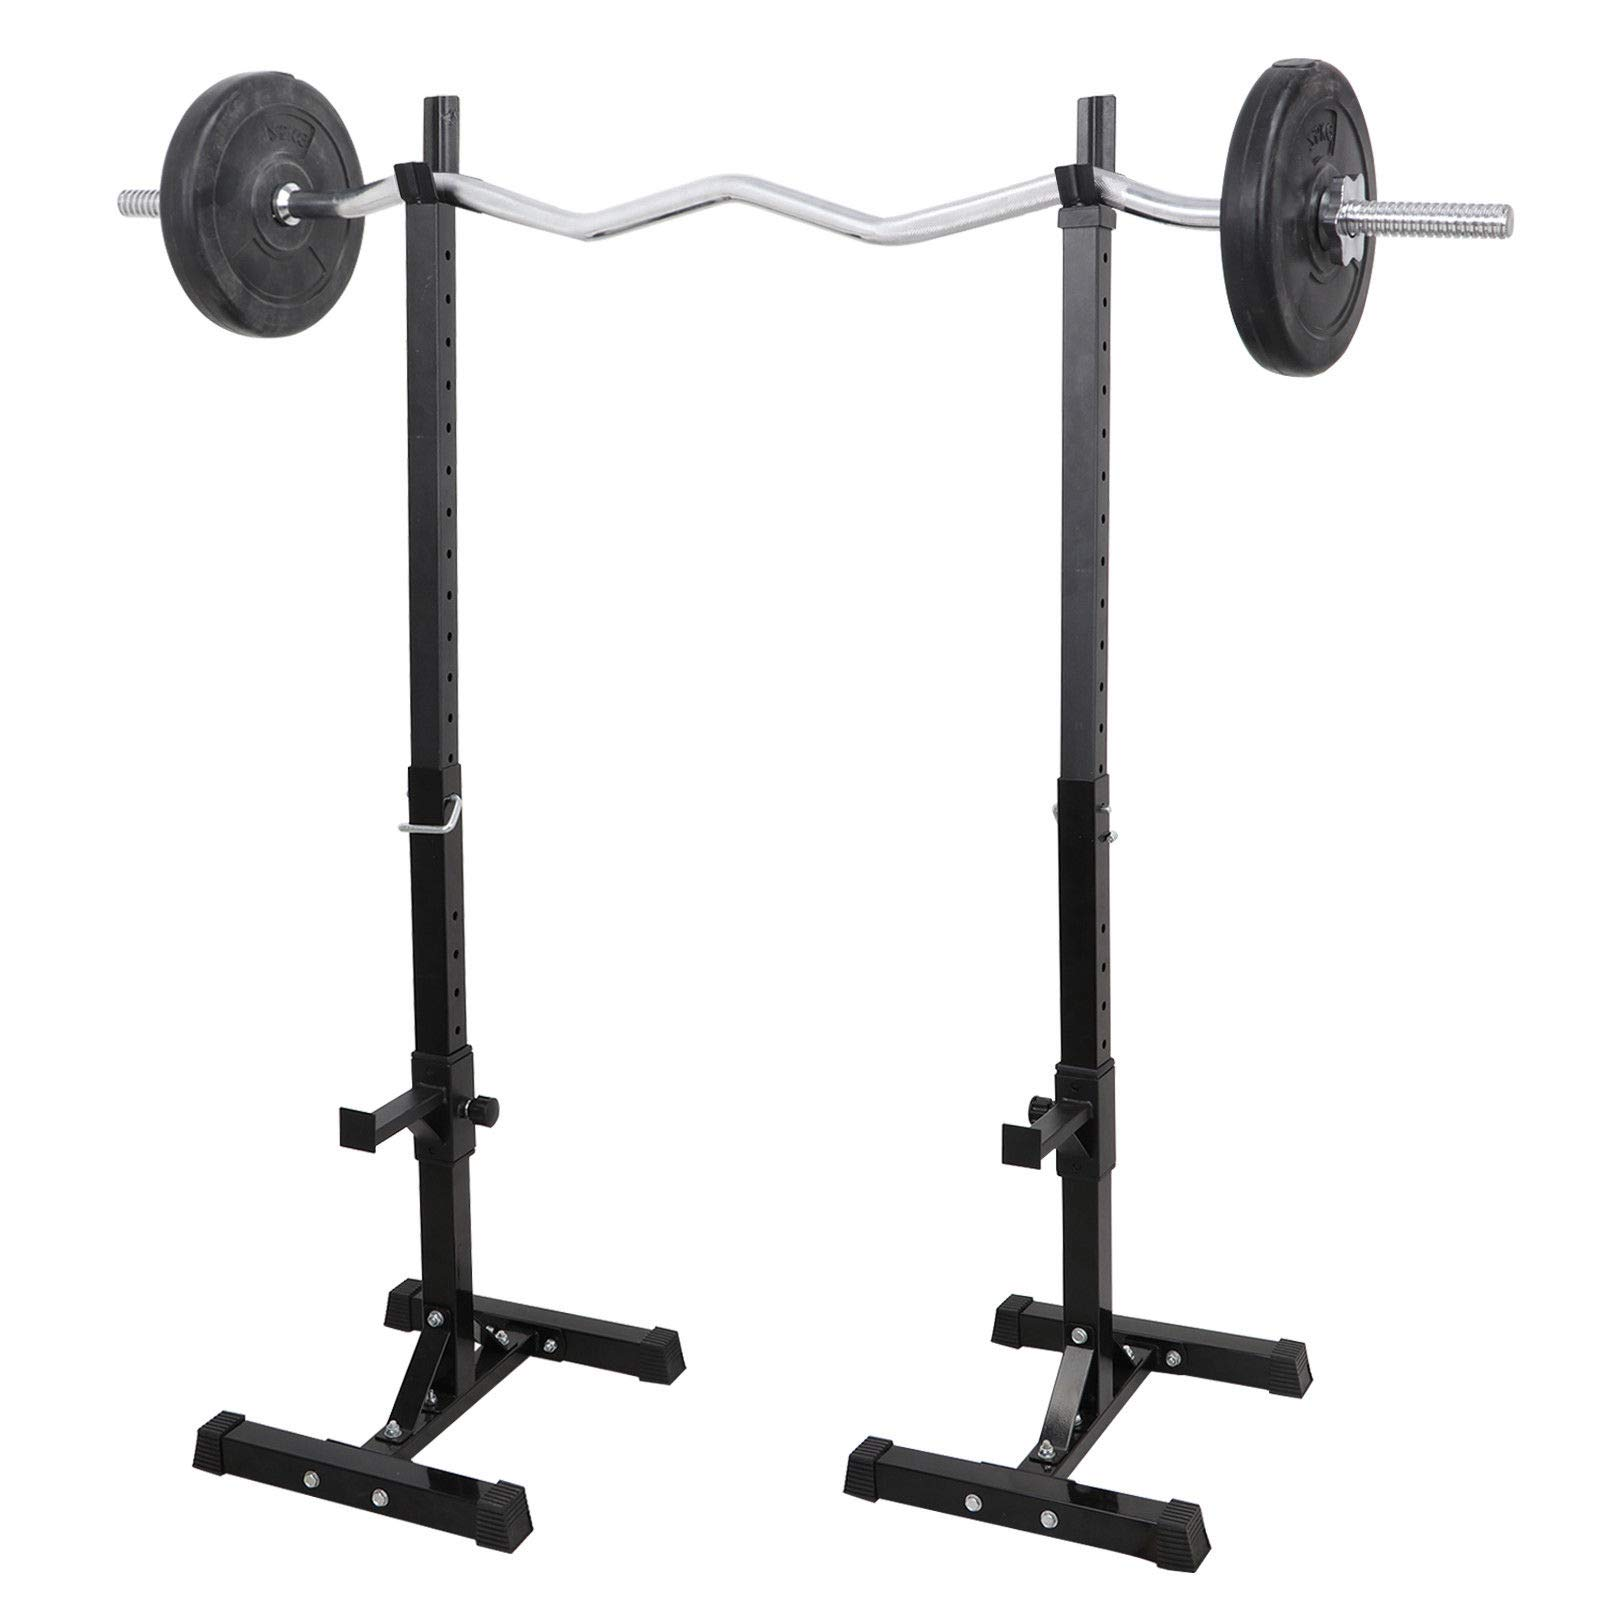 Heavens Tvcz Barbell Rack Stand Press Bench Power Squat Gym Weight Solid Adjustable Free Stand Set of 2 Exercise